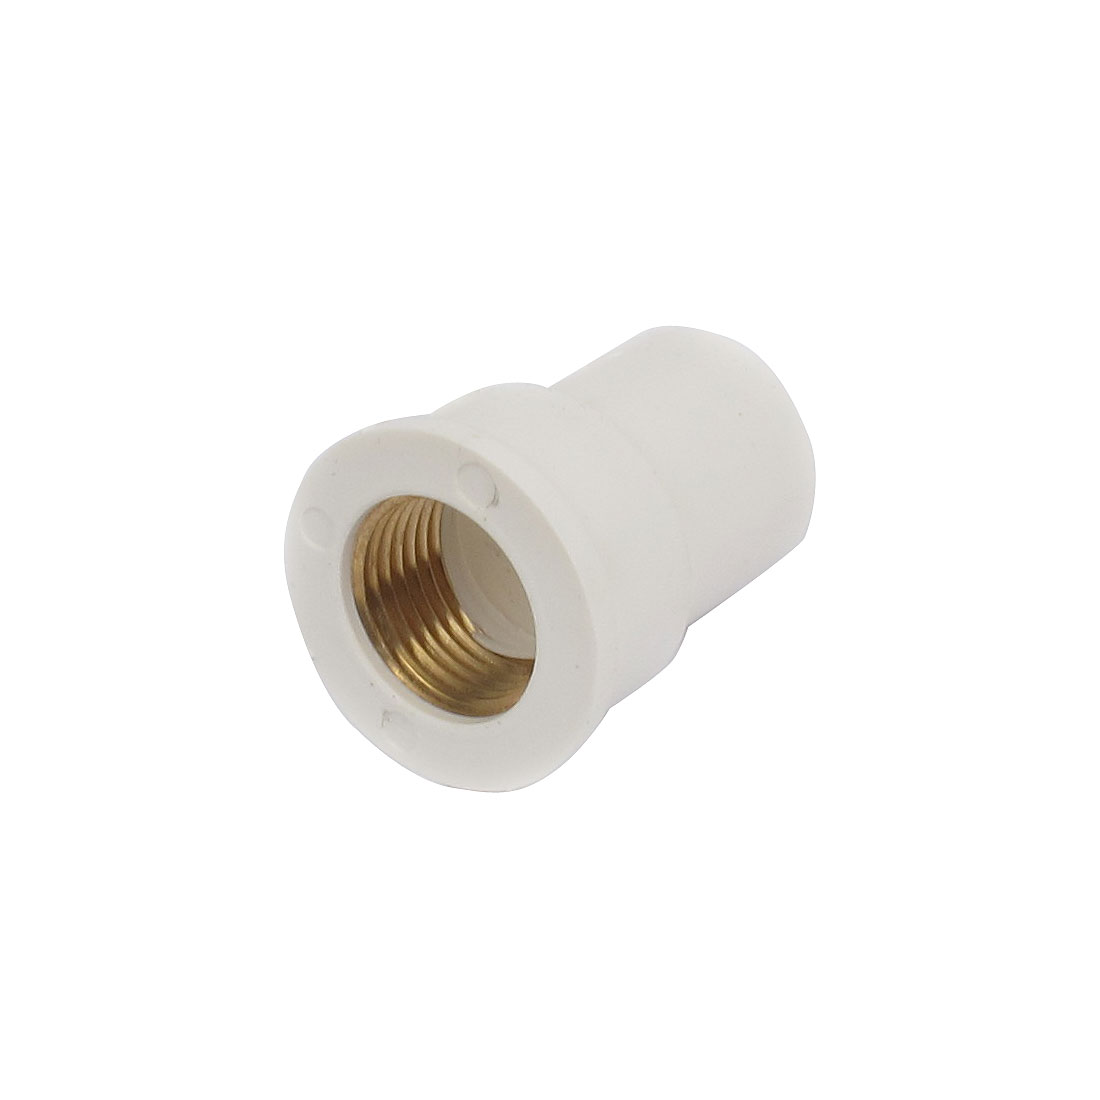 19mm 1/2BSP Male Thread PVC Straight Pipe Fitting Coupler Connector